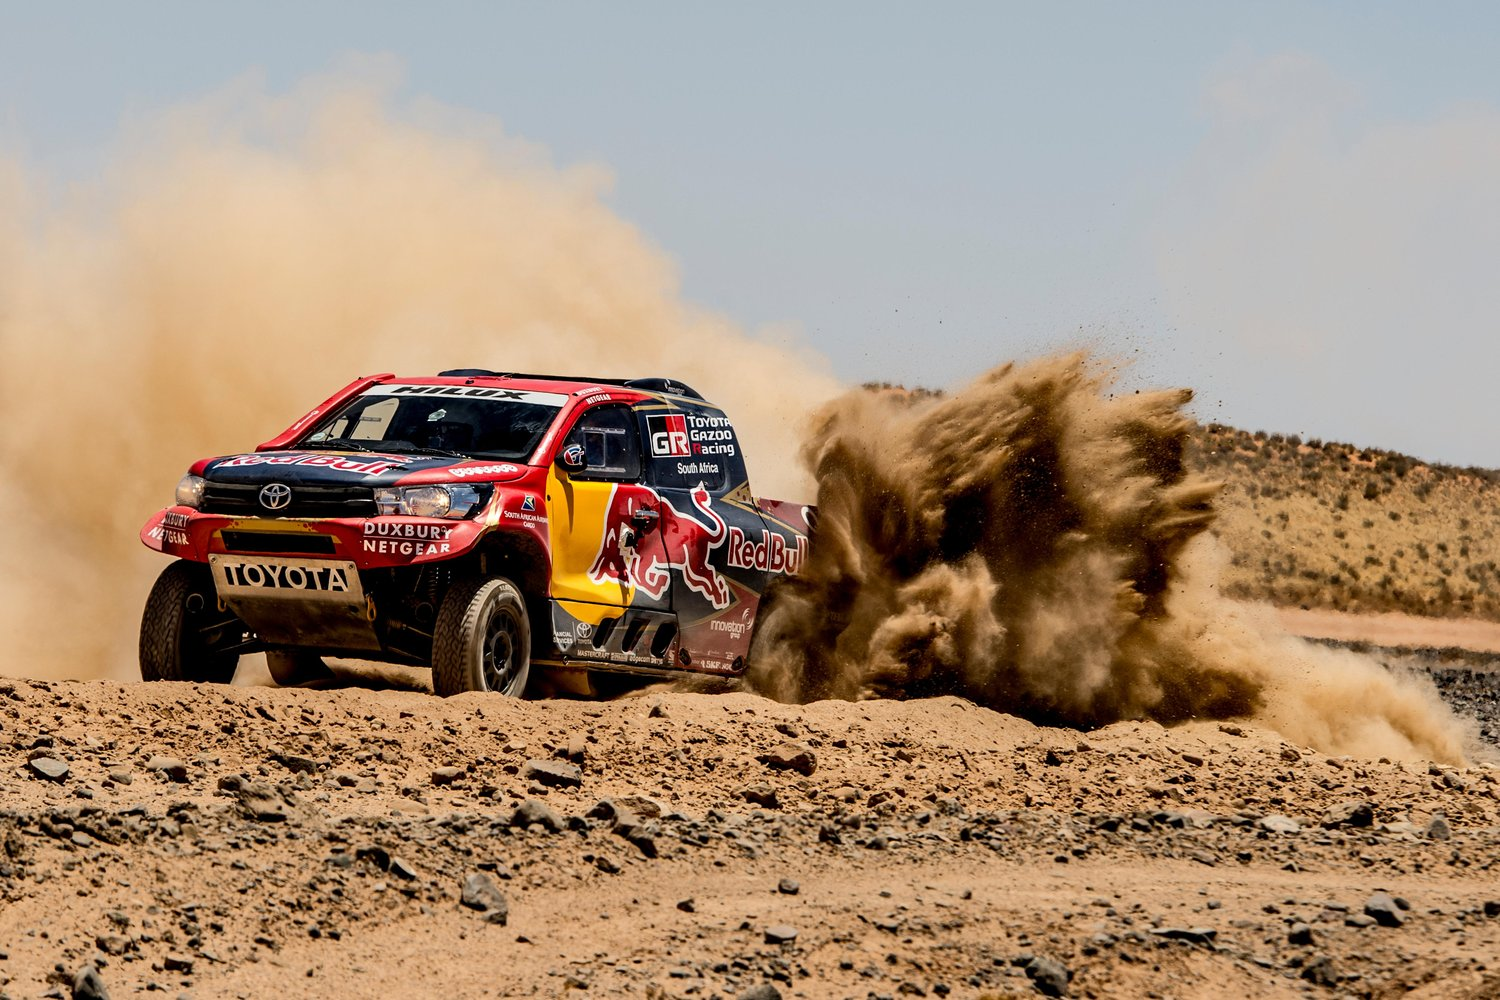 3 SA-built Toyota Hilux race vehicles among top 10 in Dakar Rally